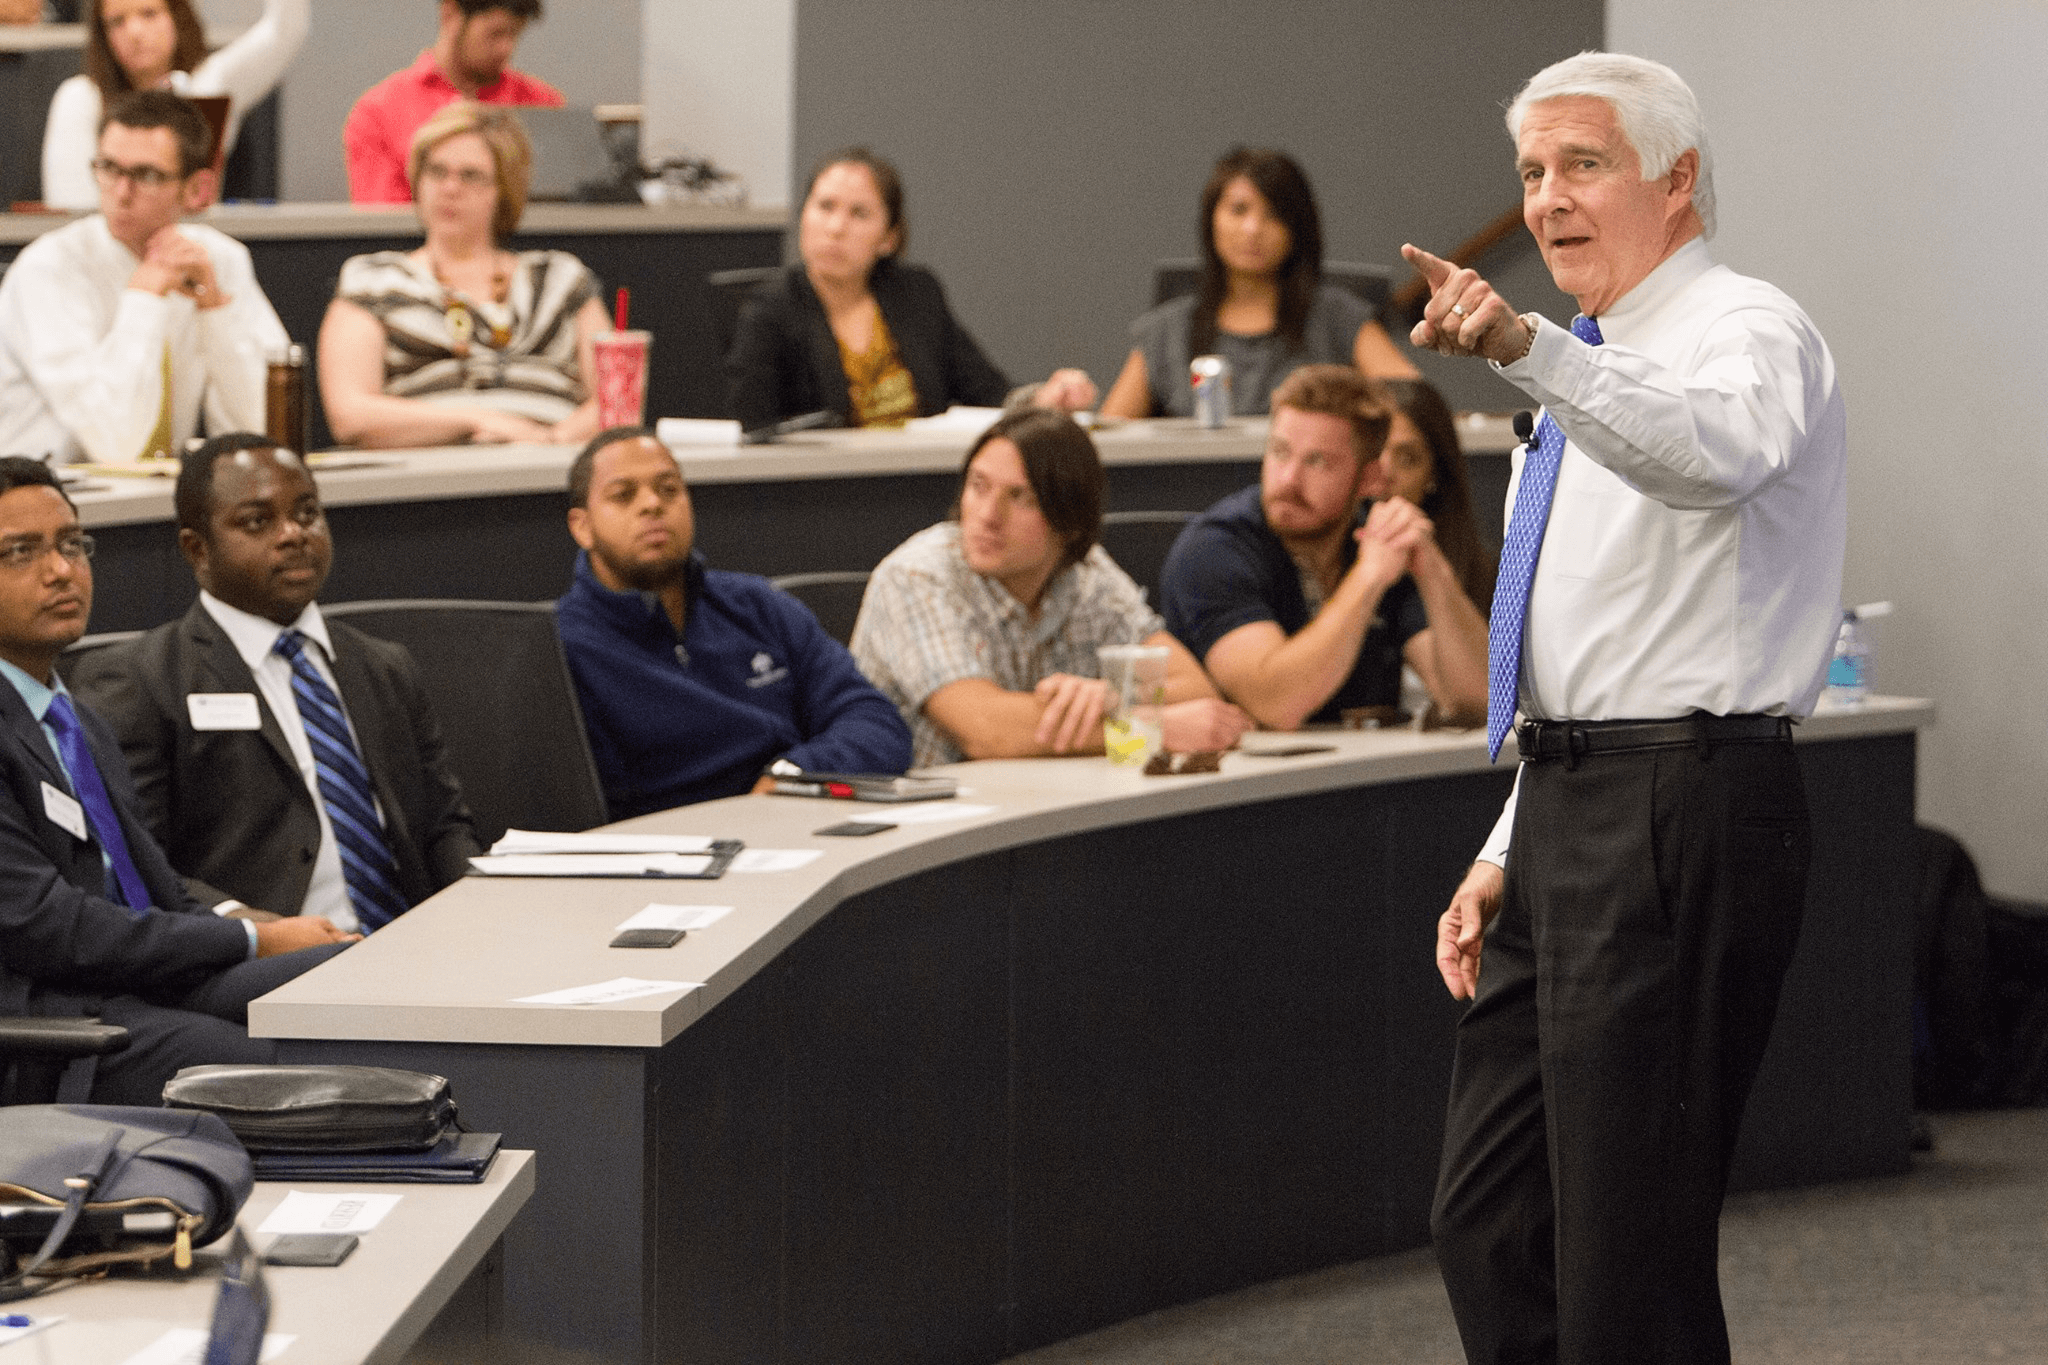 Former Microsoft CEO gives lecture at thunderbird for master in management students